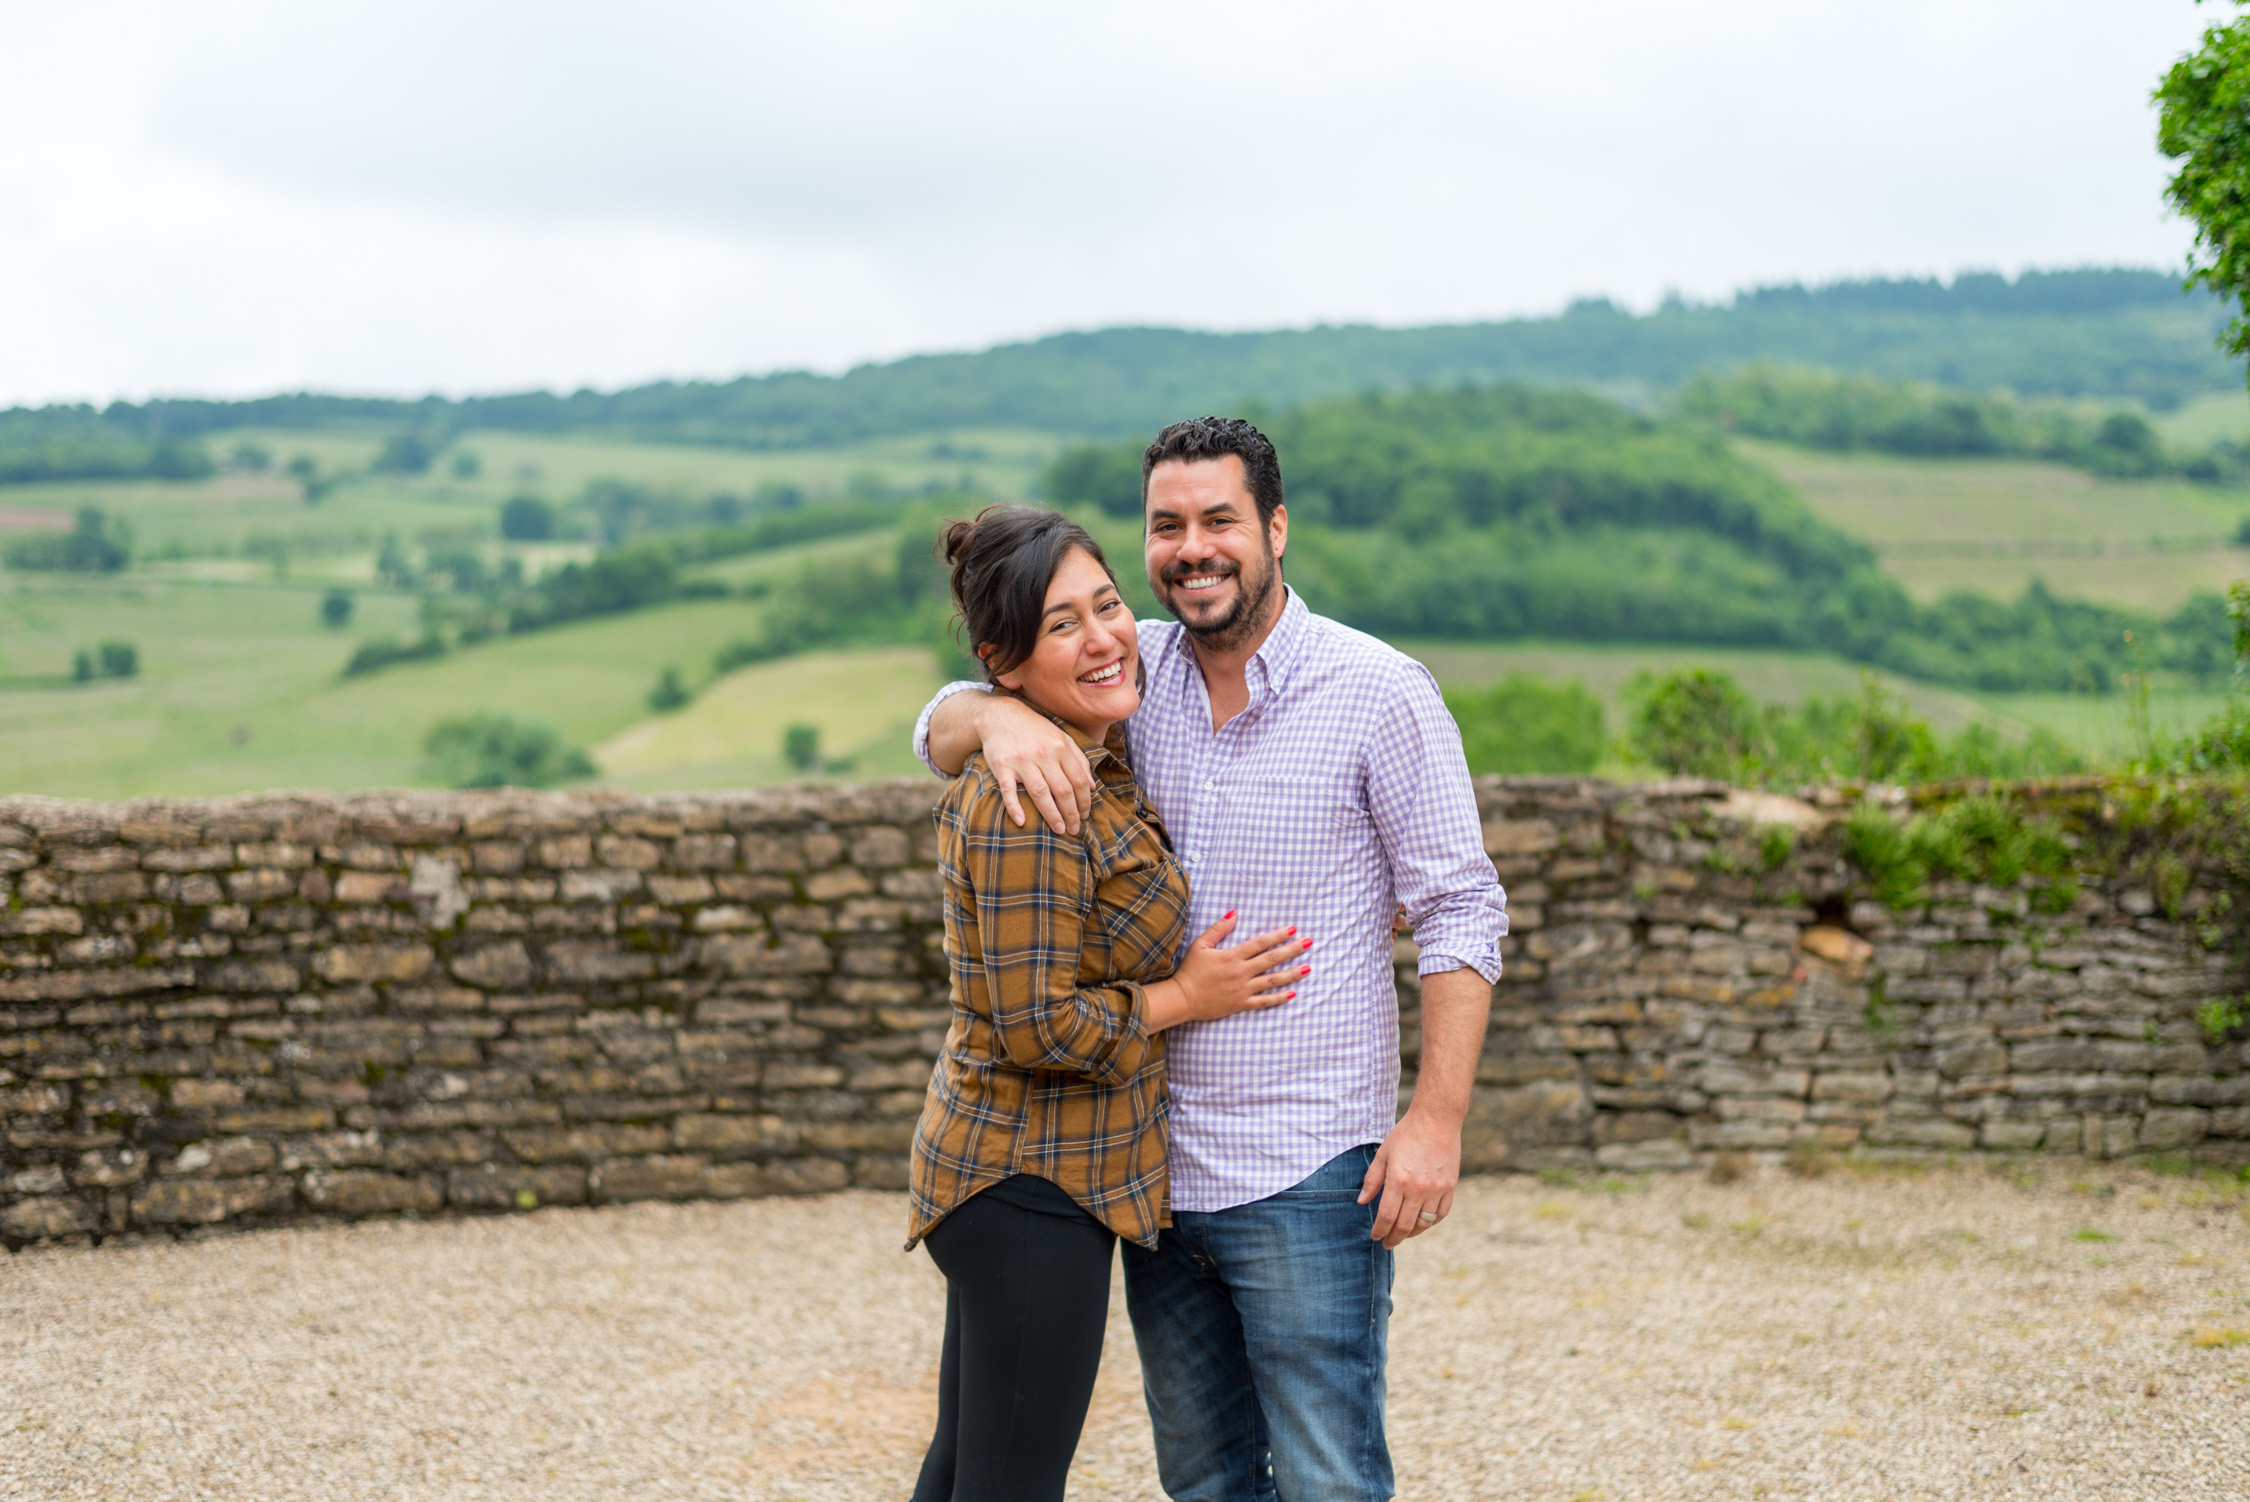 Chris and I at a vineyard in Beaujolais, France